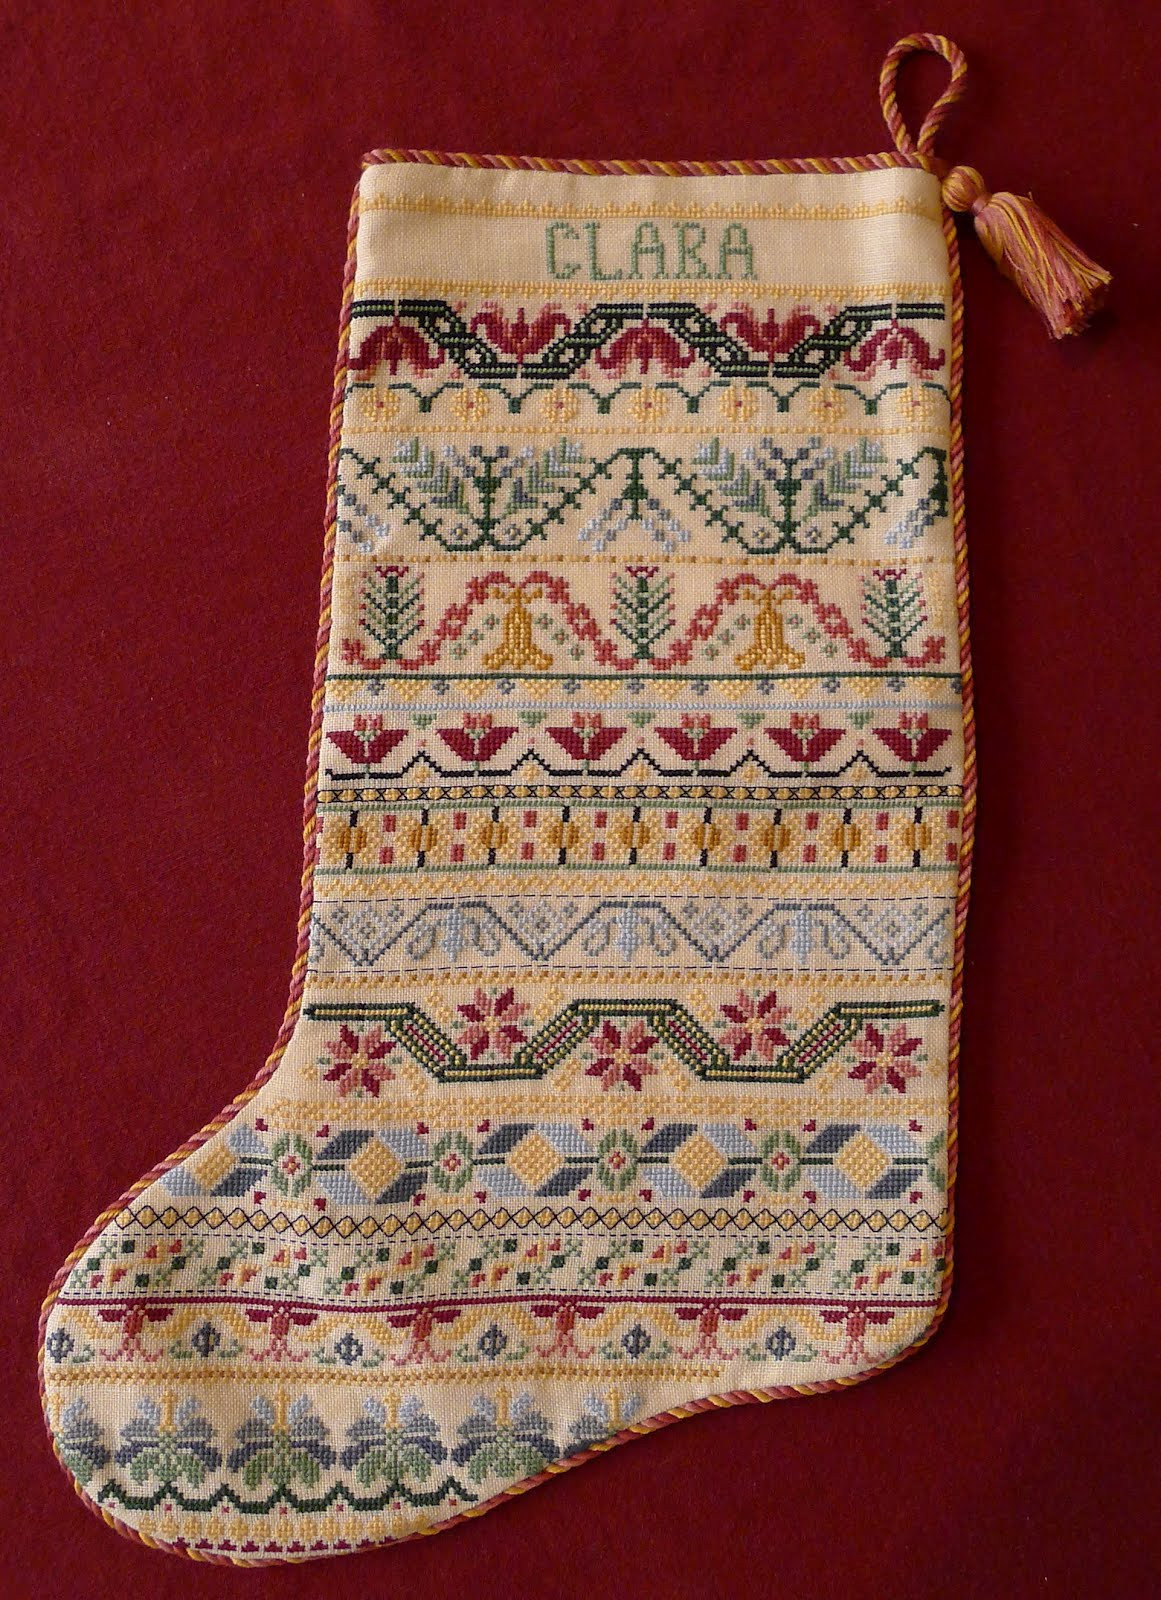 Cross Stitch Christmas Stocking Best Of Palace Of Leaves Three Cross Stitched Christmas Stockings Of New 46 Photos Cross Stitch Christmas Stocking